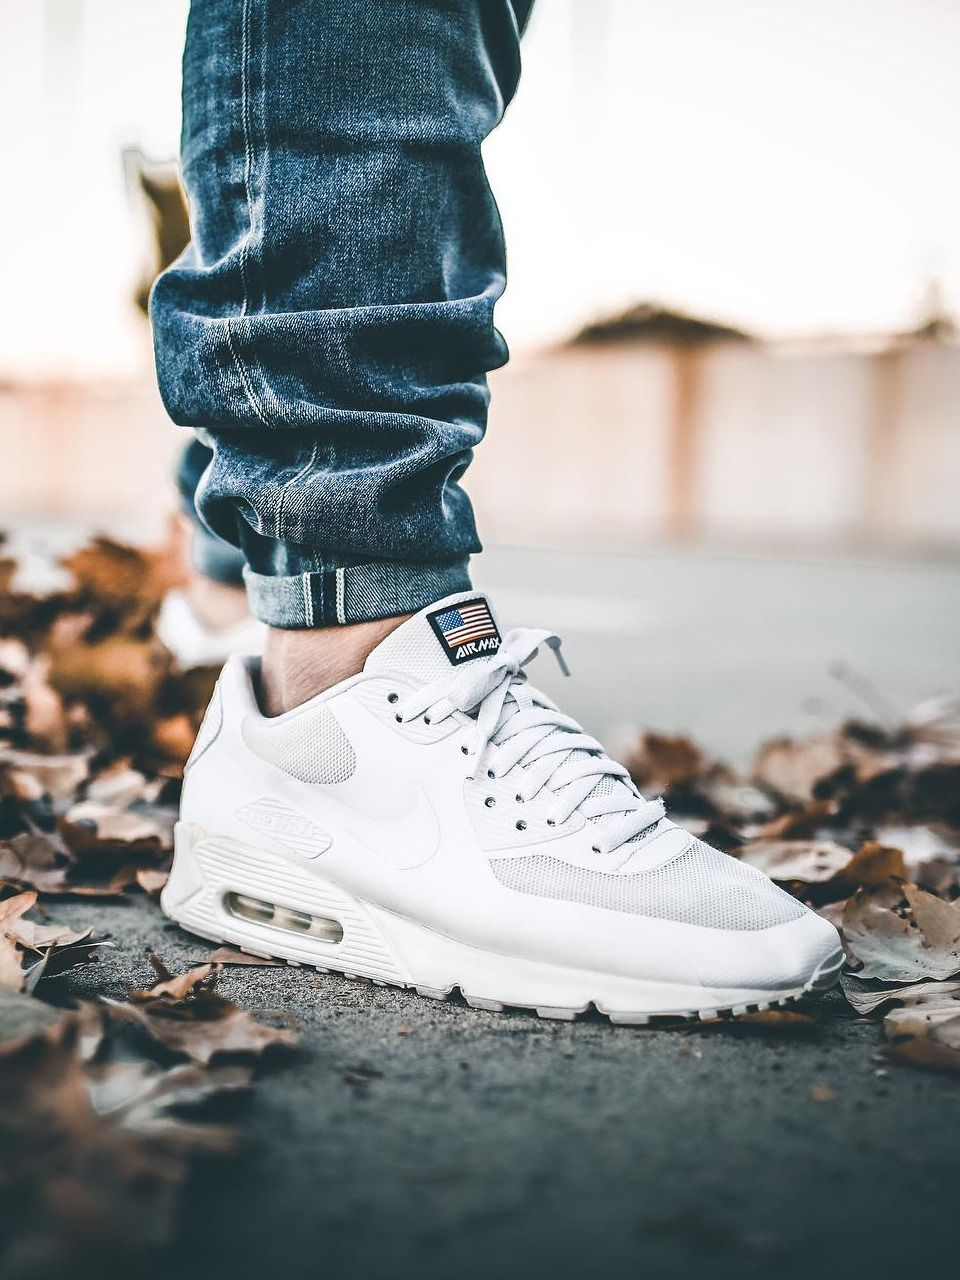 7efa16cfce61 Nike Air Max 90 Hyperfuse  Independence Day  White - 2013 (by liamparsons4)  Sole Trees makes shoe trees designed solely for the makeup of tennis shoes  ...